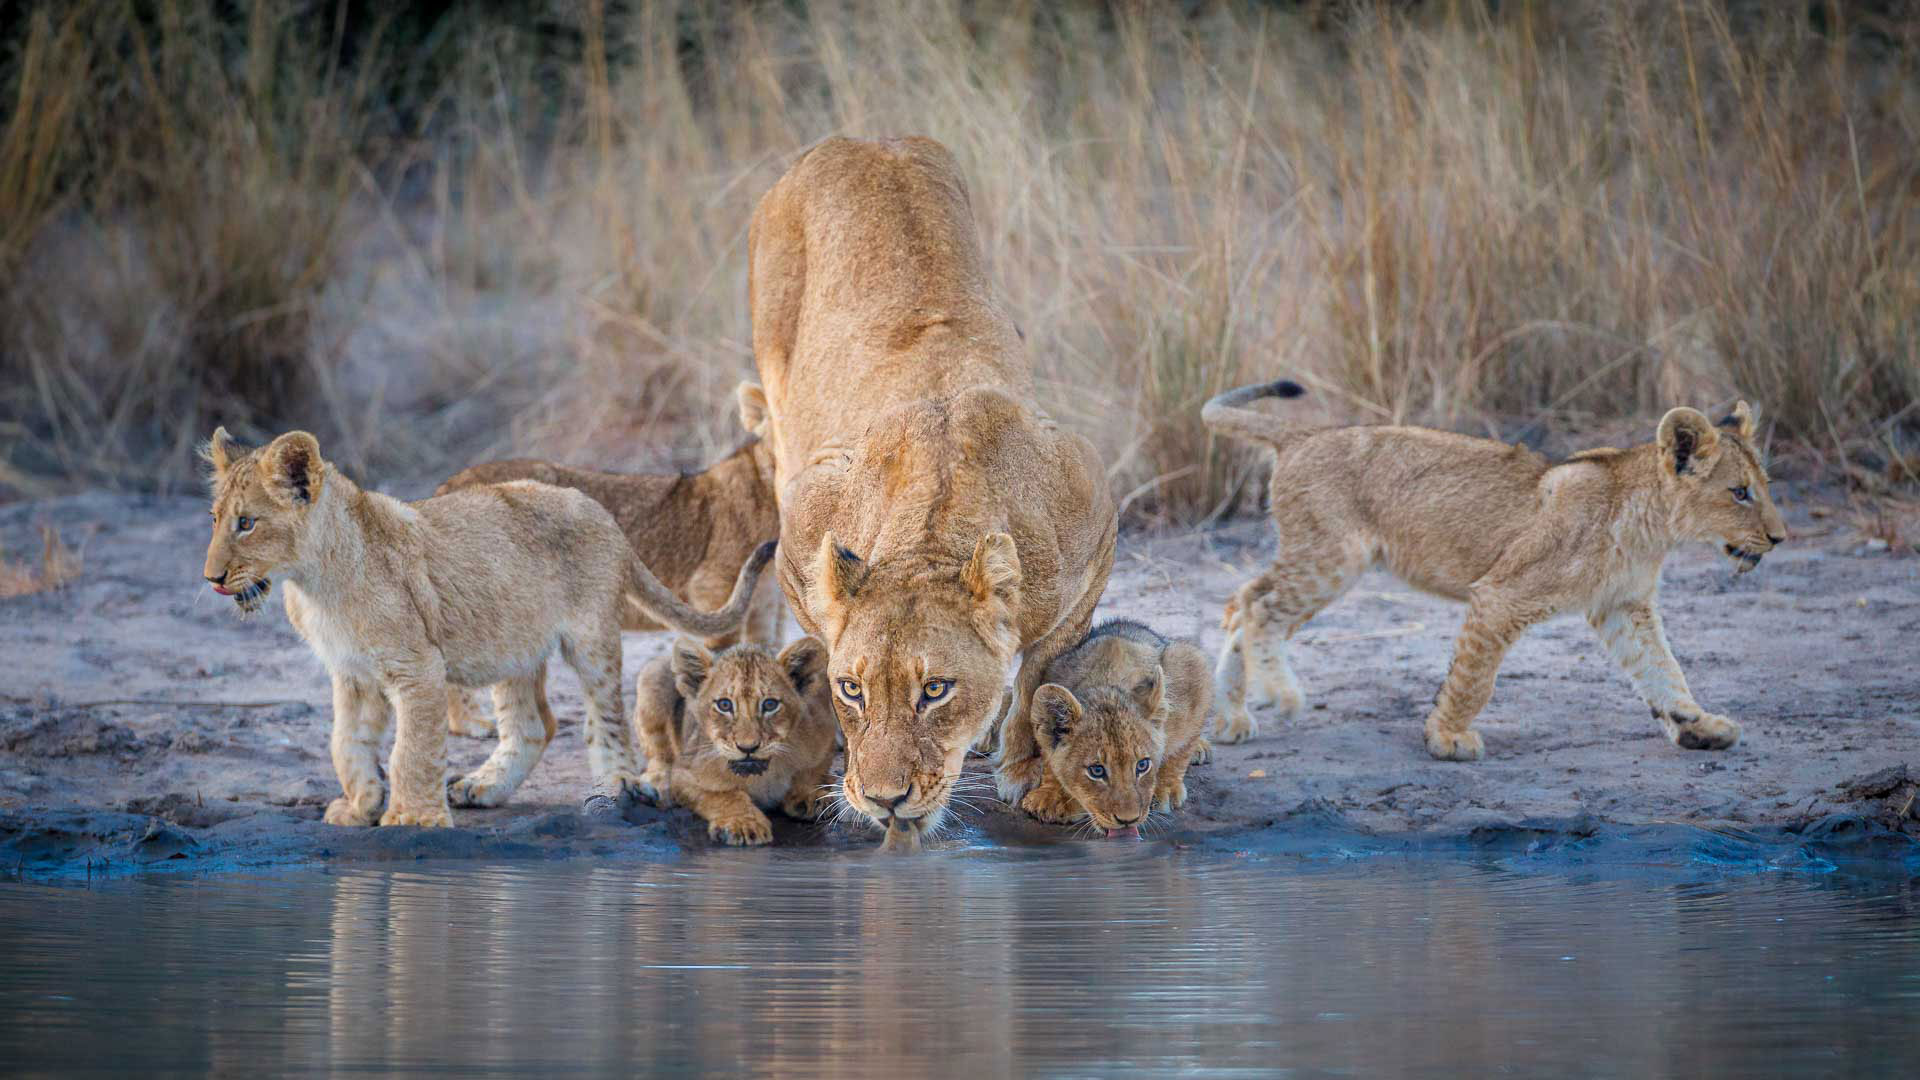 Tanda Tula - Lioness and cubs drinking